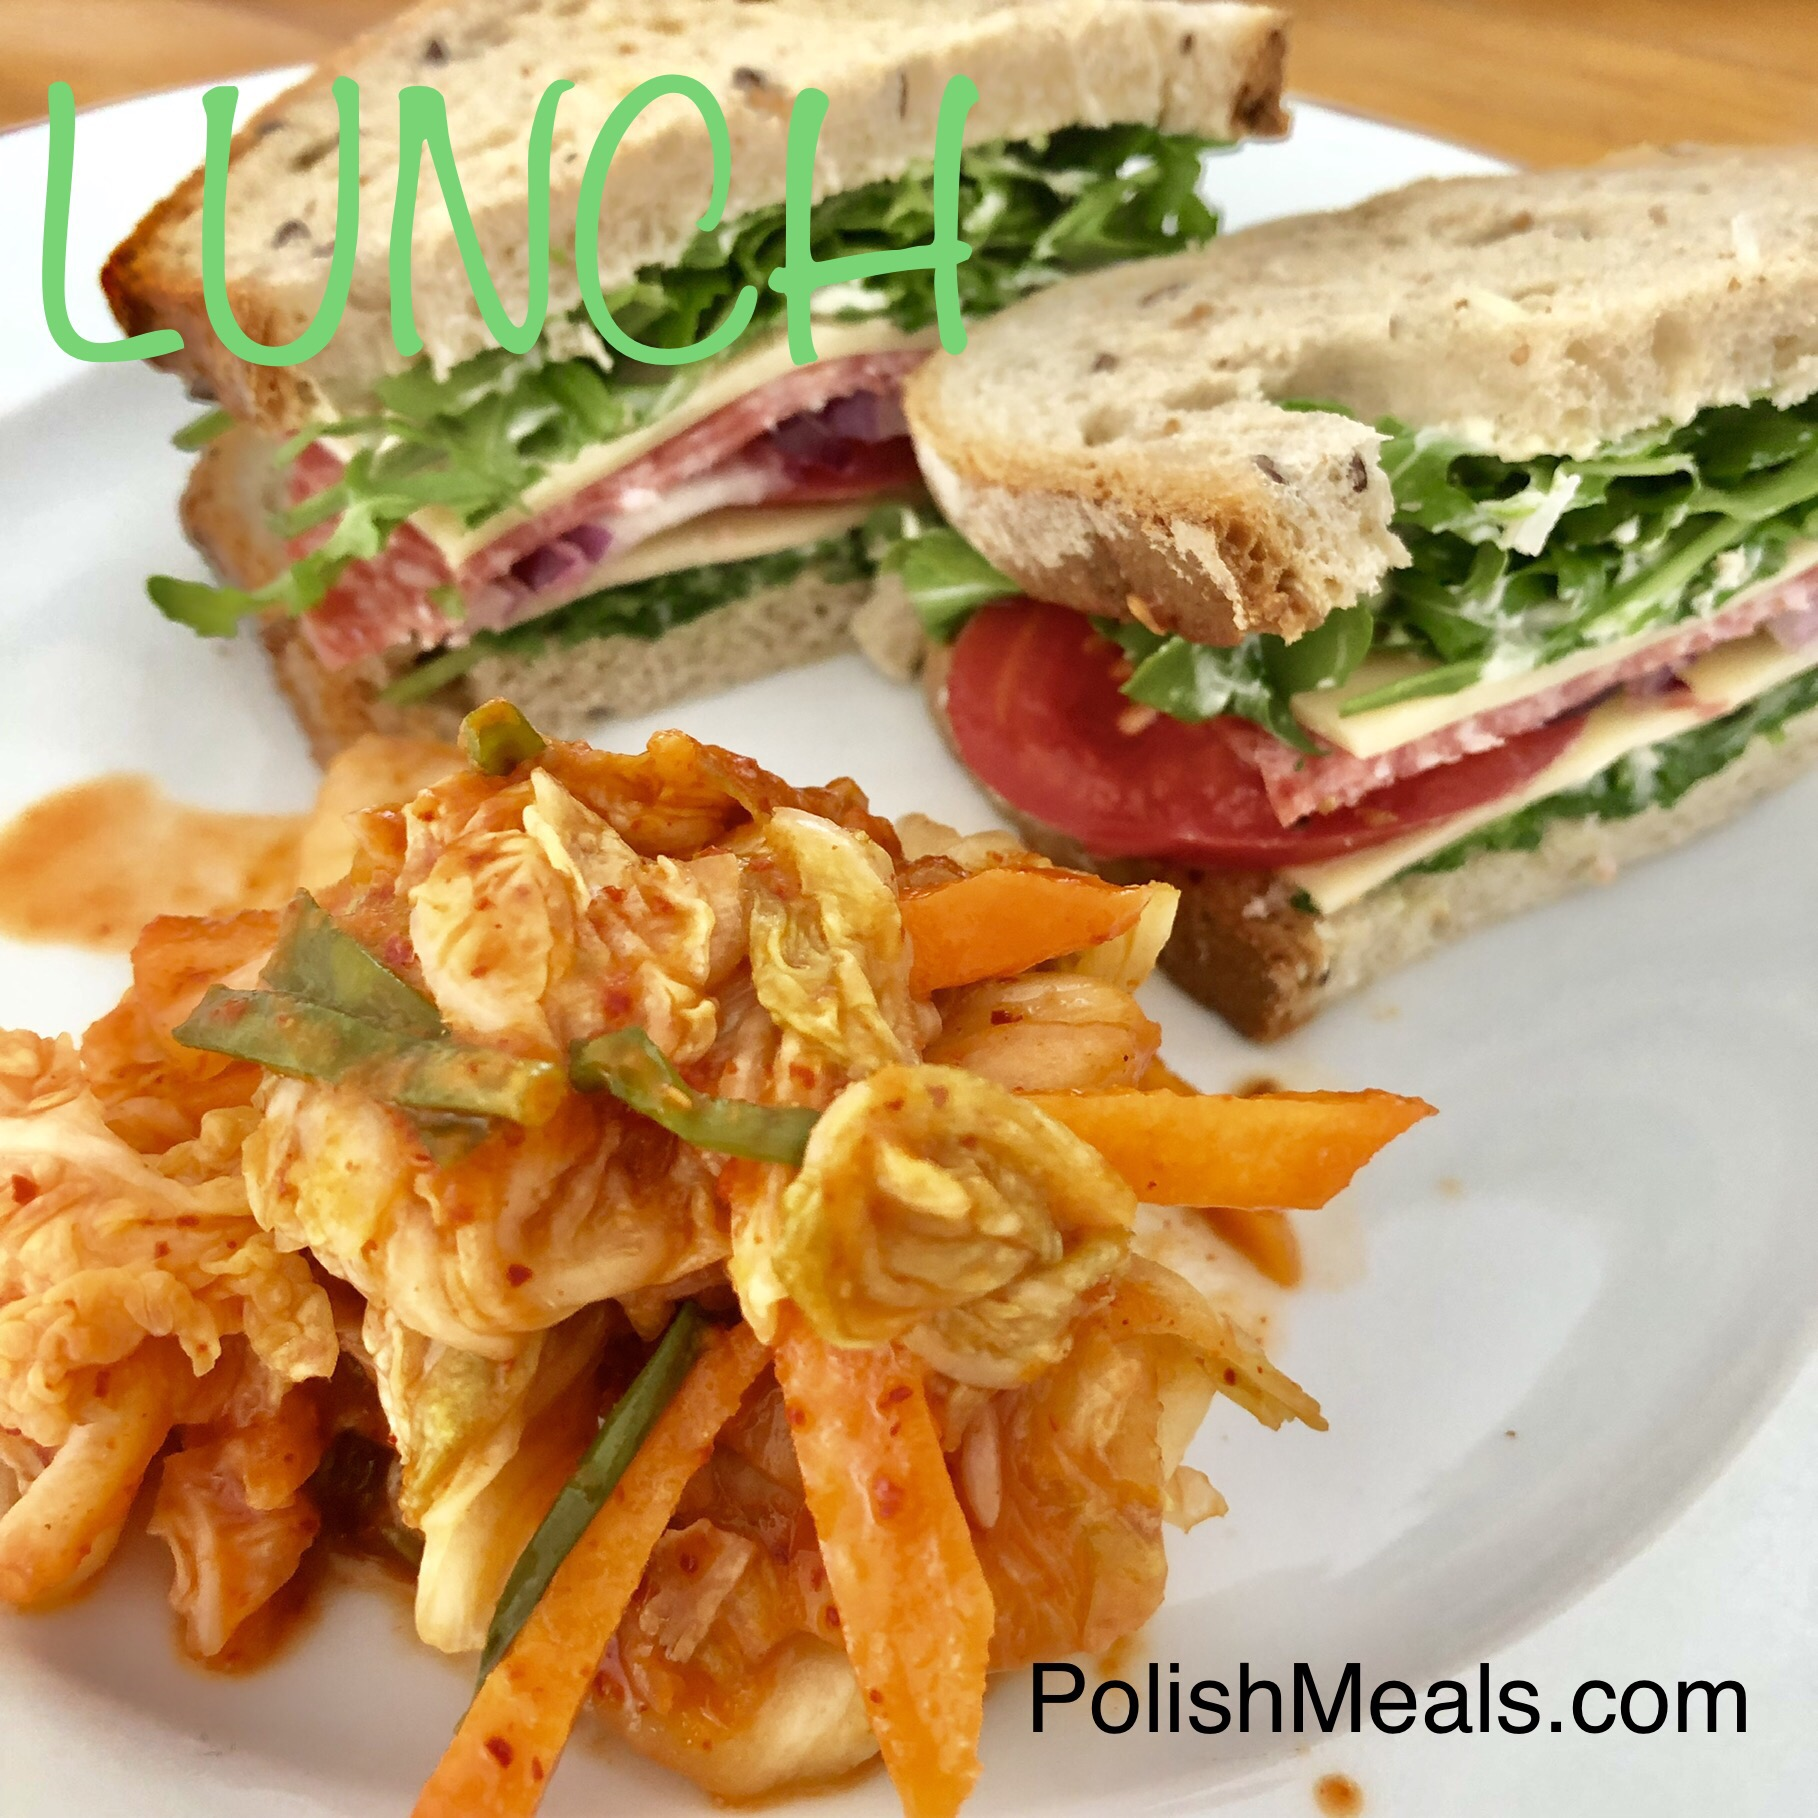 polish sandwich for lunch with kimchi